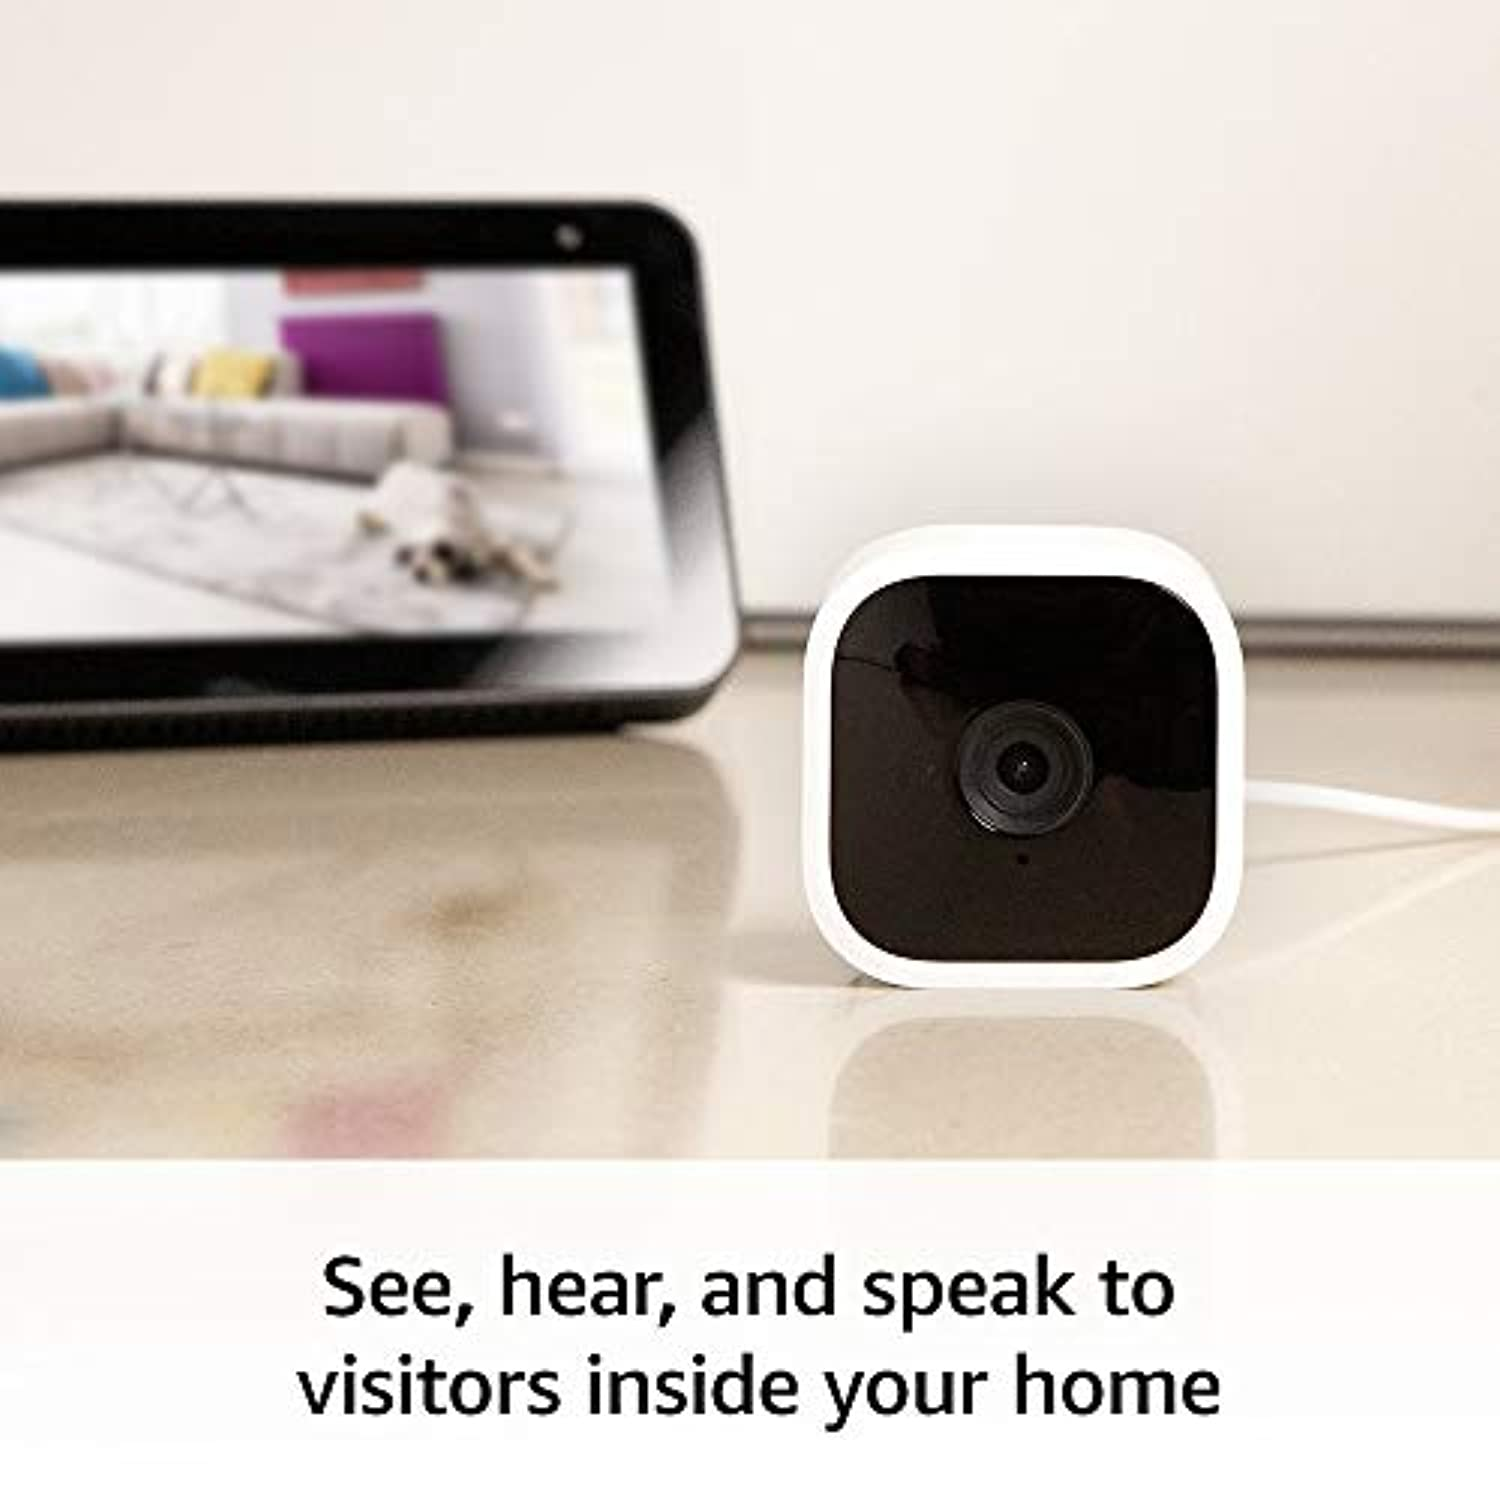 Classier: Buy Blink Home Security Introducing Blink Mini – Compact indoor plug-in smart security camera, 1080 HD video, motion detection, Works with Alexa – 1 camera